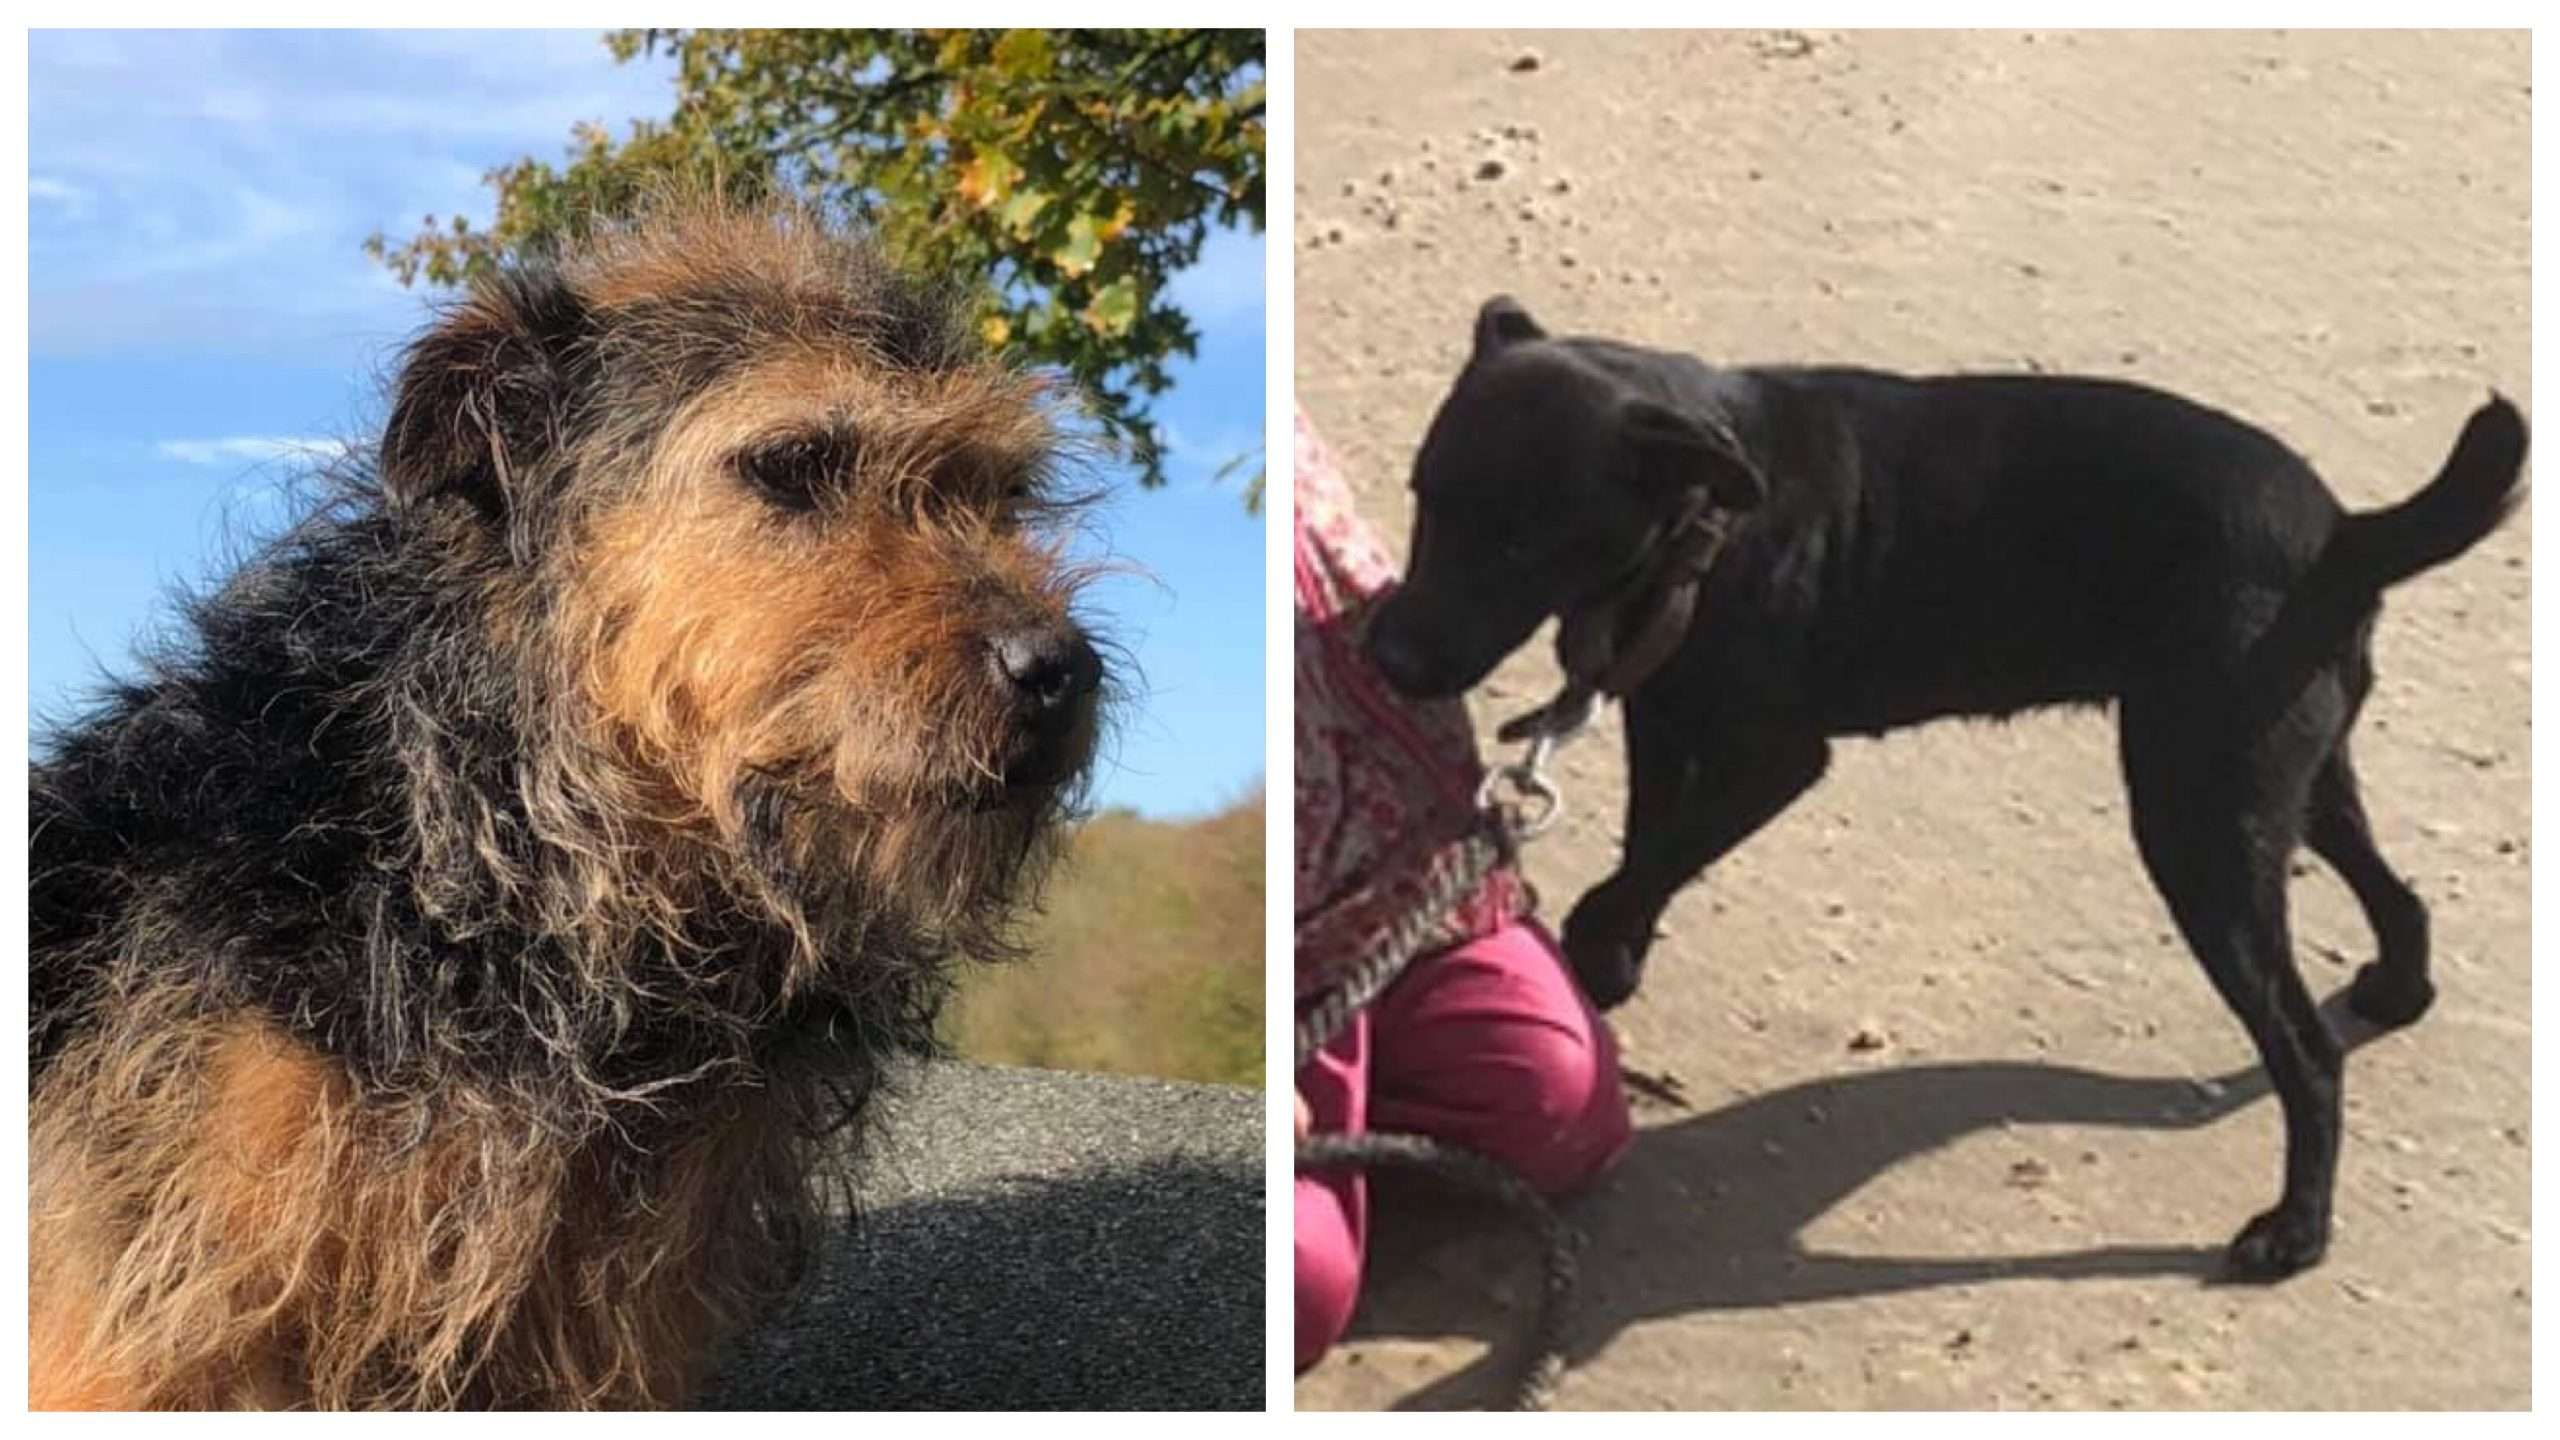 Two dogs stolen overnight from Beckley, Rye, East Sussex. #PetTheftReform